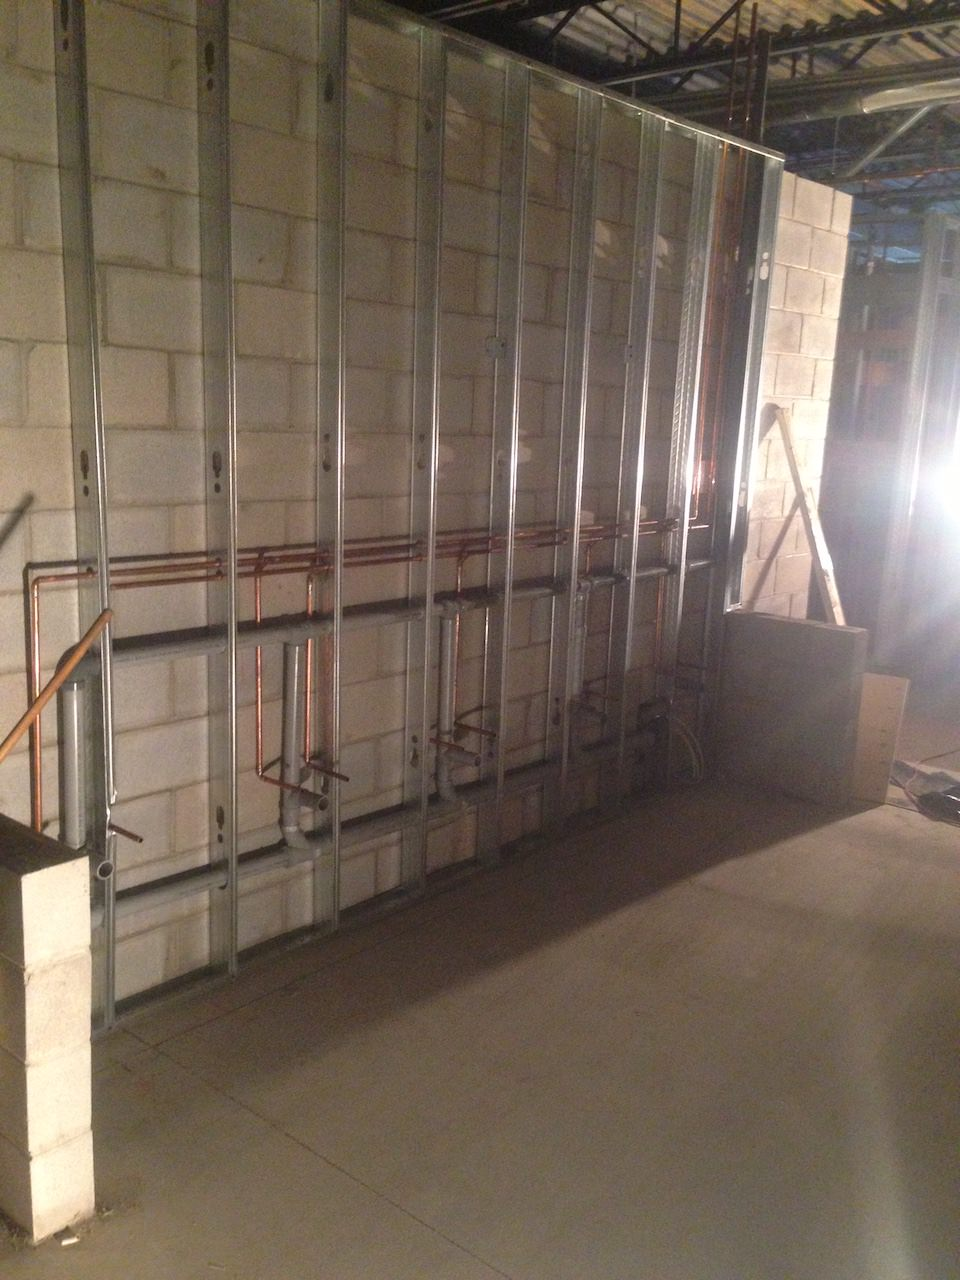 Copper pipes behind wall